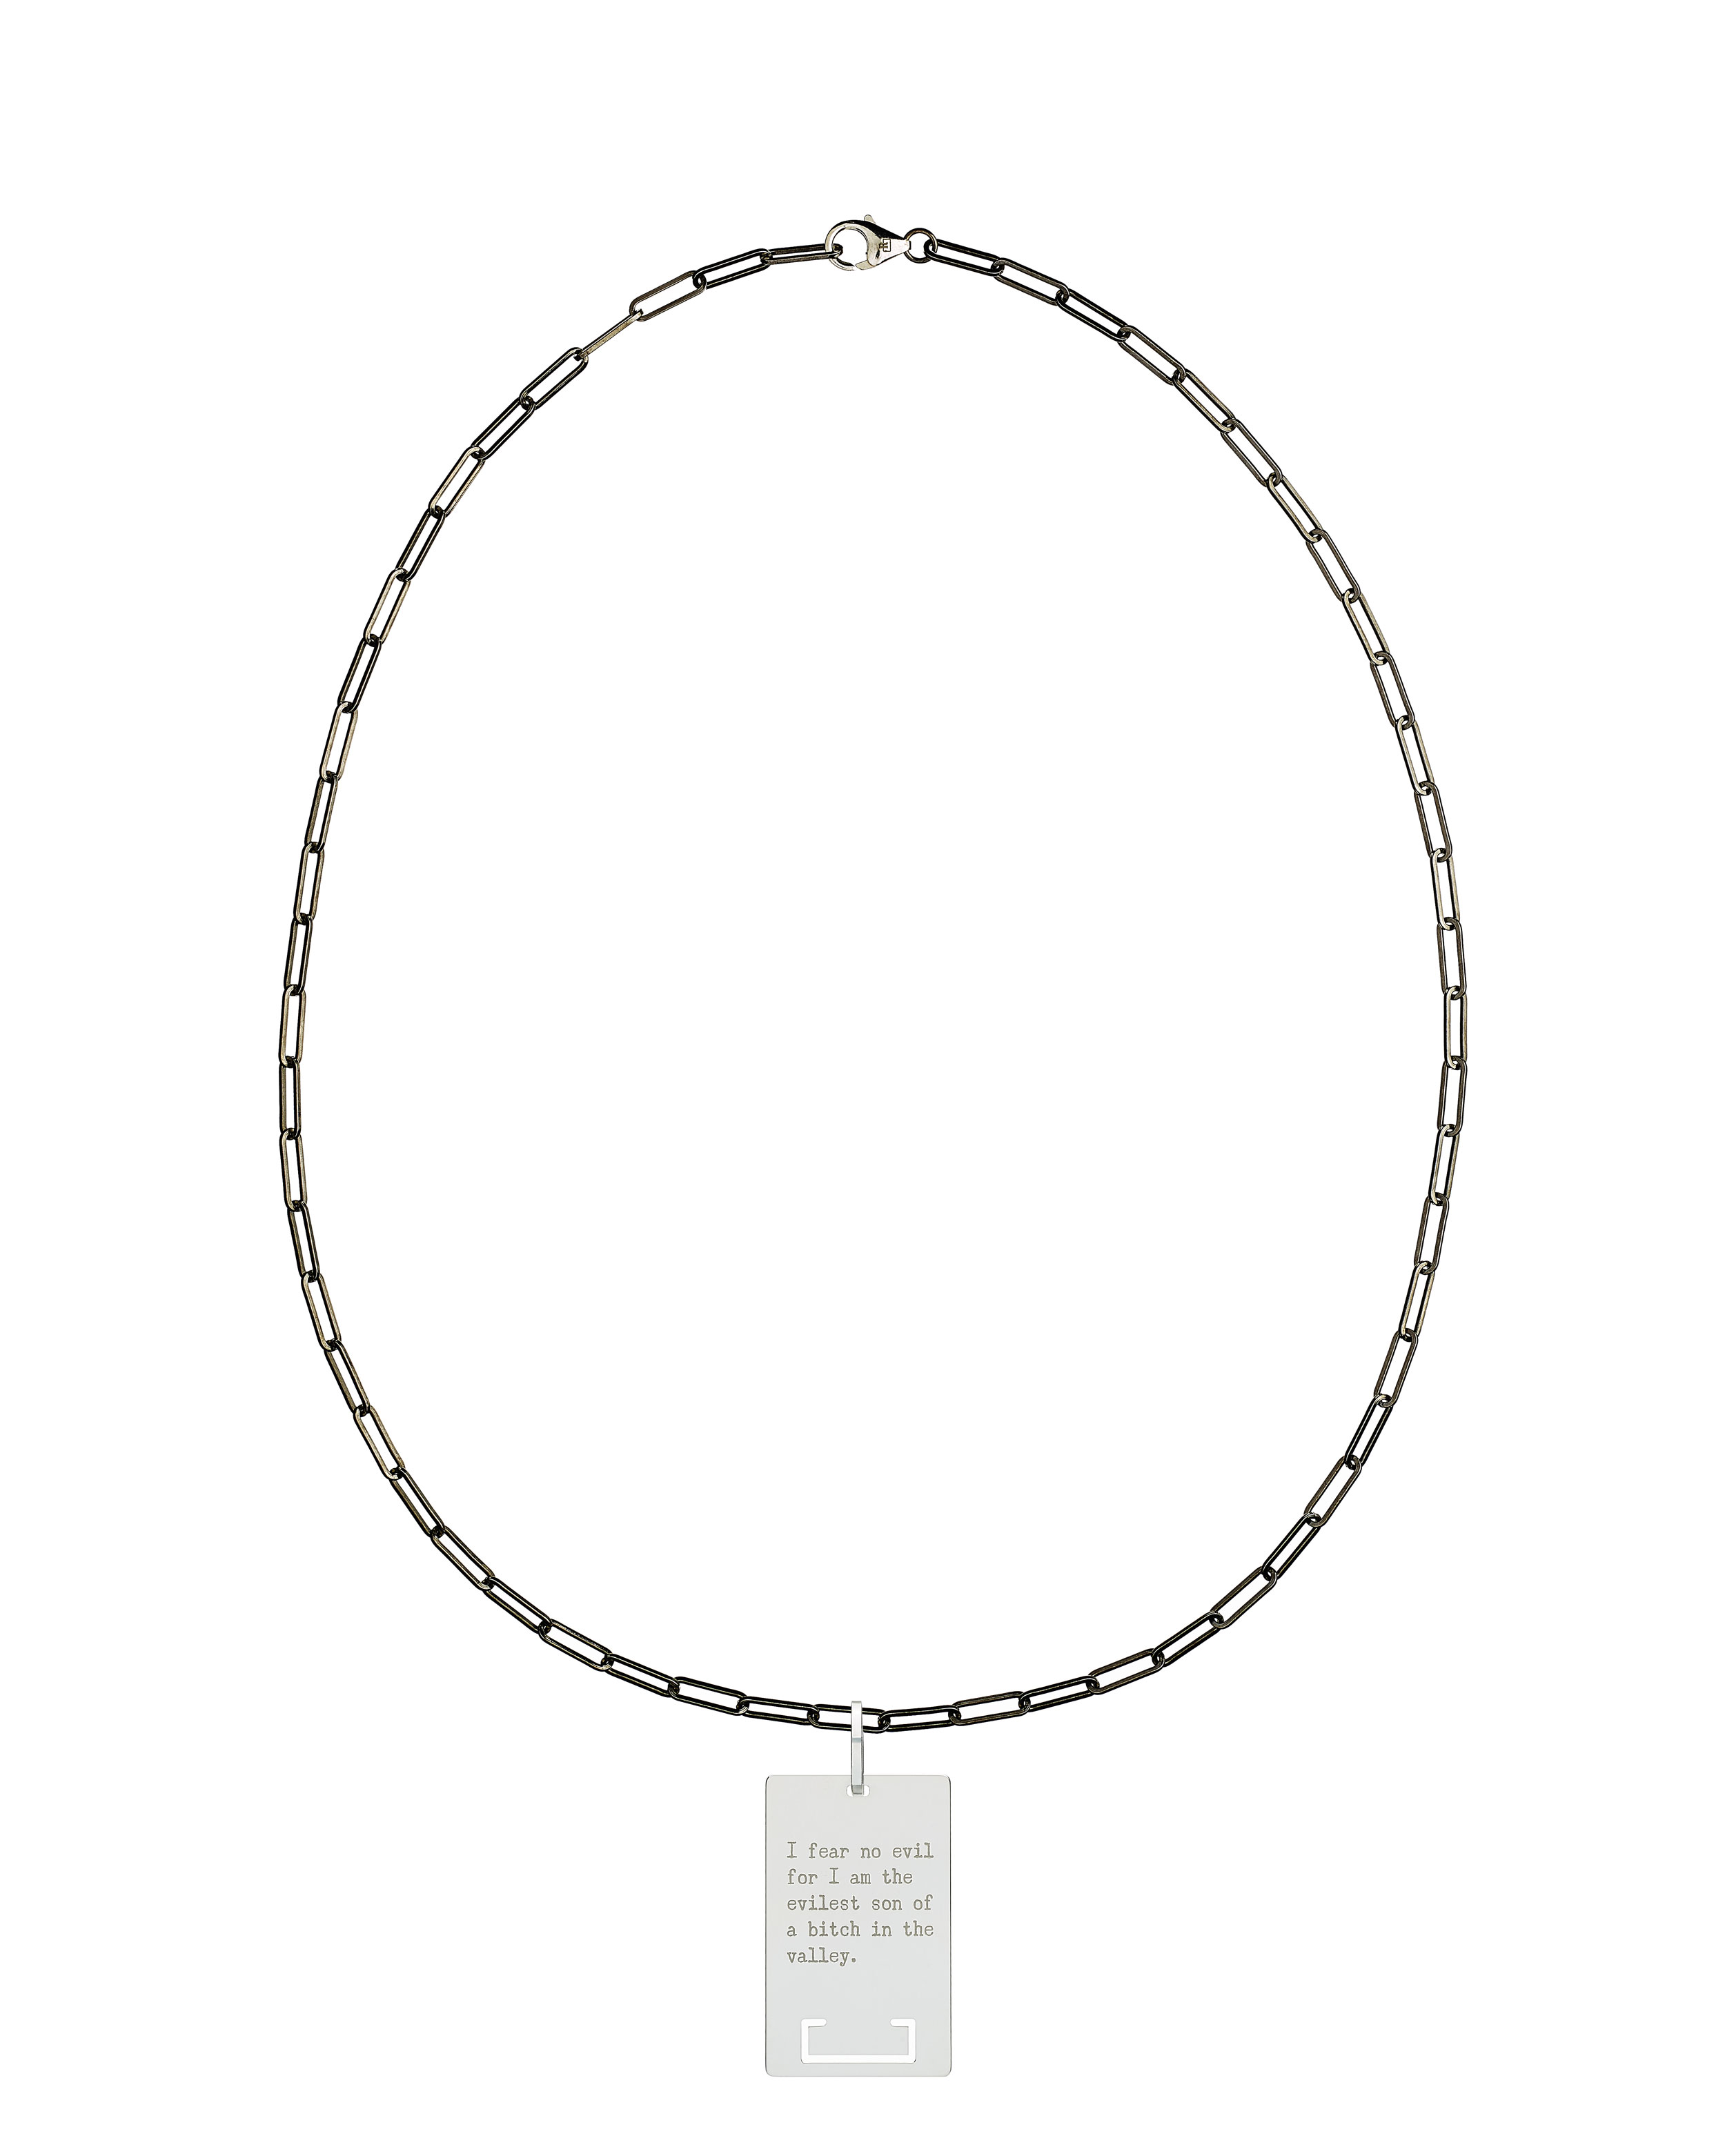 solid 925 Sterling silver and black ruthenium chain luxury necklace from Regalia Black Logo collection with massive military 925 solid Sterling silver pendant laser engraved with Regalia message